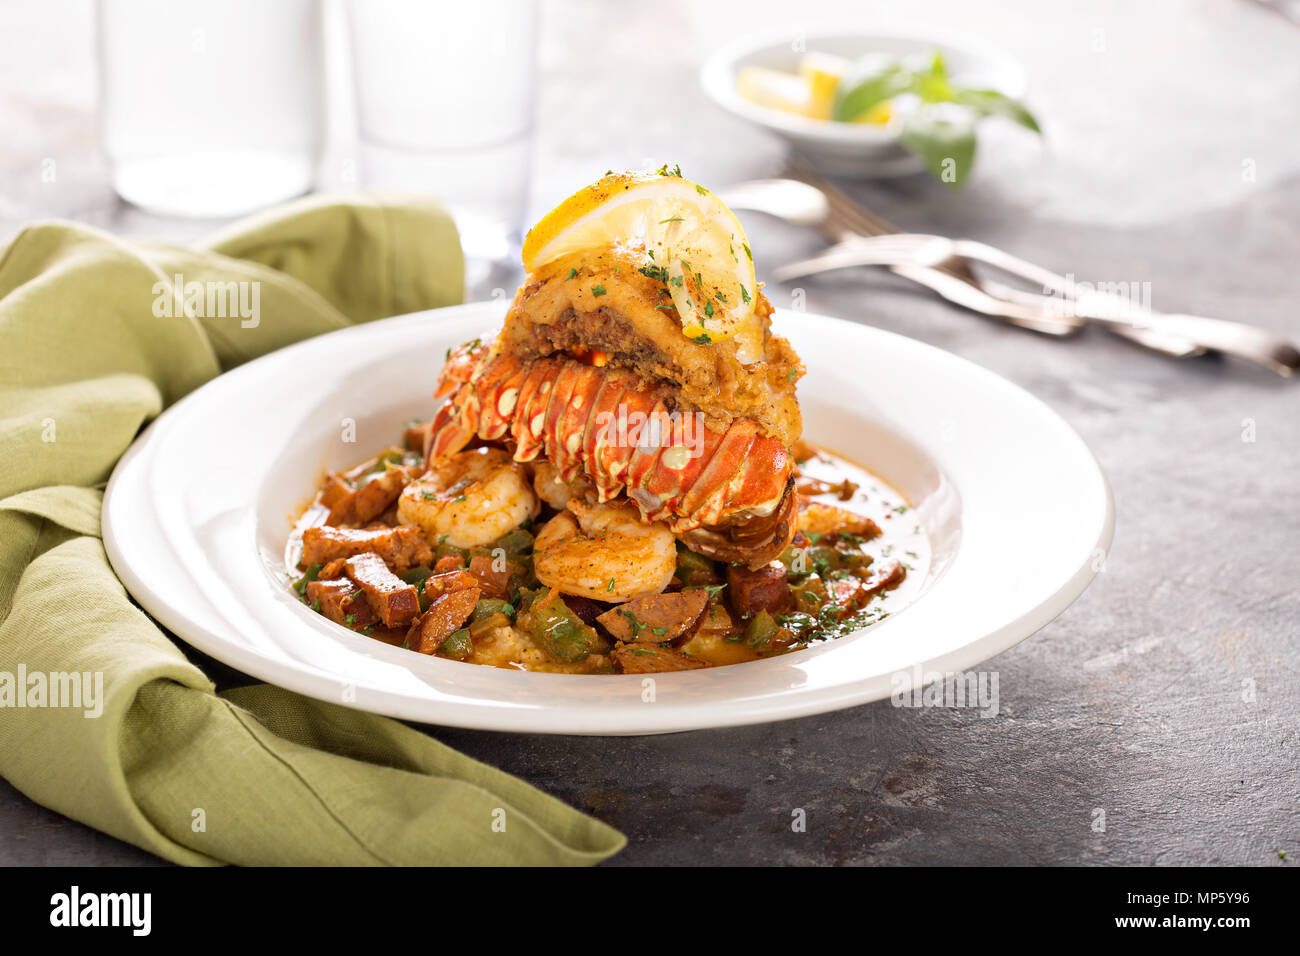 Grits with a lobster tail, shrimp and sausage - Stock Image